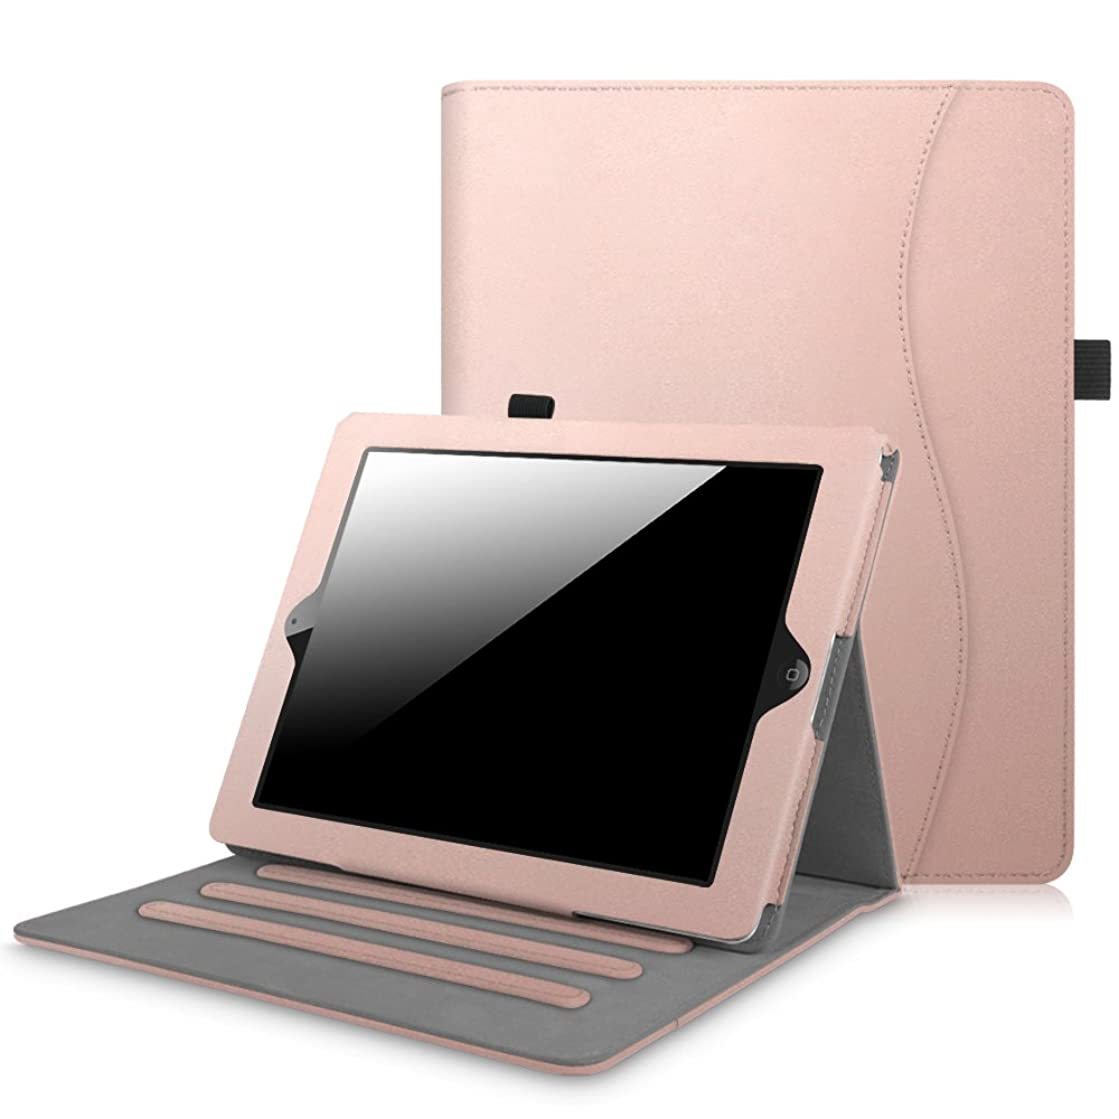 Fintie iPad 2/3/4 Case [Corner Protection] - [Multi-Angle Viewing] Folio Smart Stand Cover with Pocket, Auto Sleep/Wake for Apple iPad 2, iPad 3 & iPad 4th Gen with Retina Display, Rose Gold